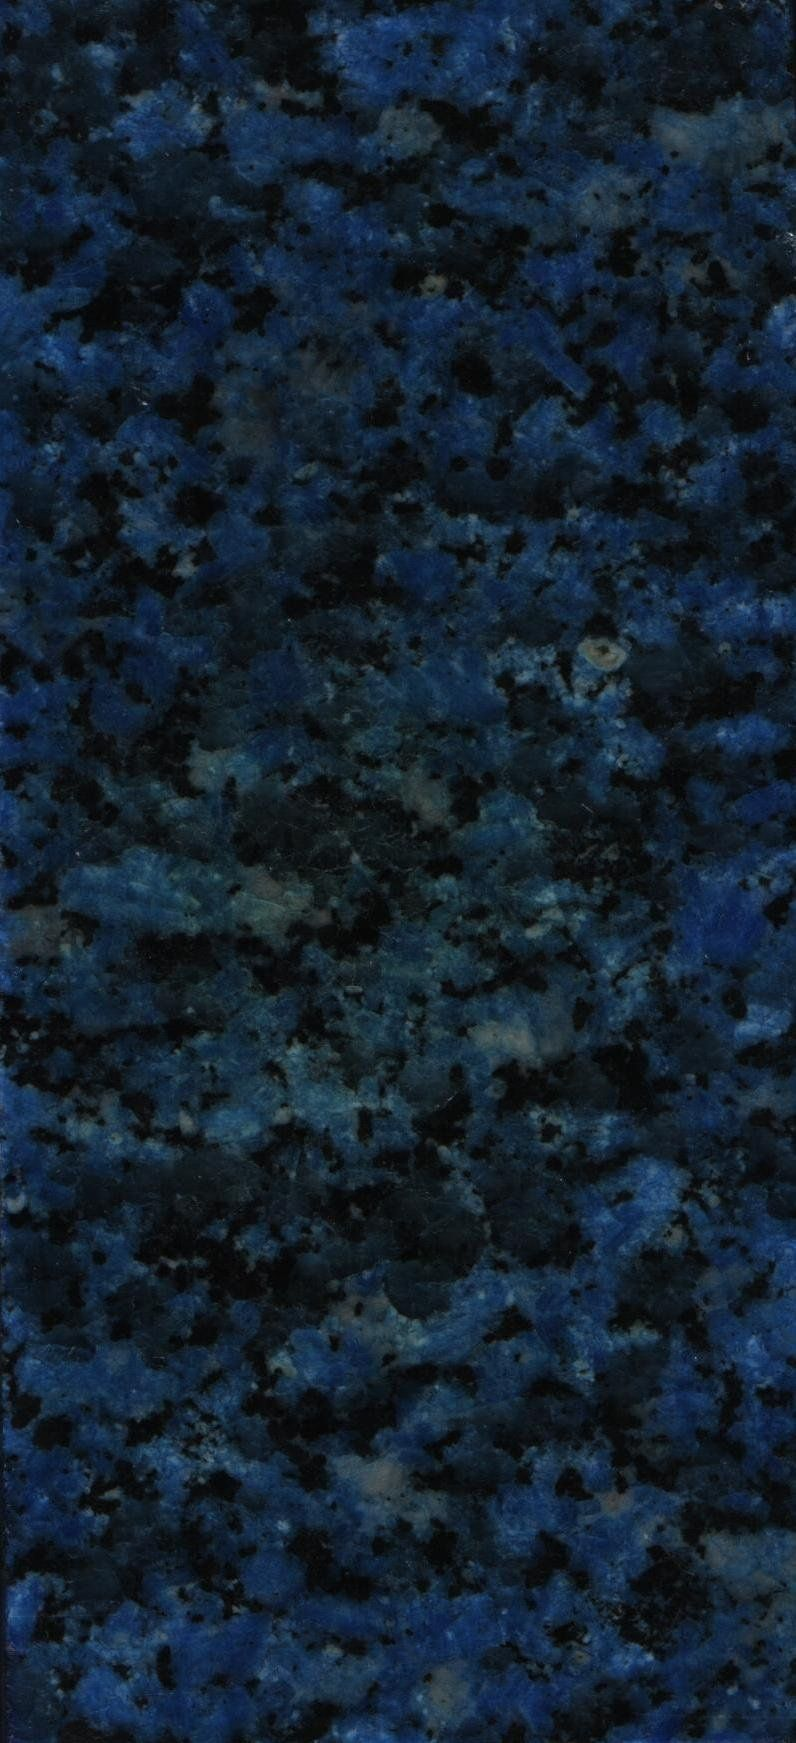 Blue Pearl Stone | Blue Granite Blue Granite Blue Pearl Granite Blue Pearl Granite  Blue .